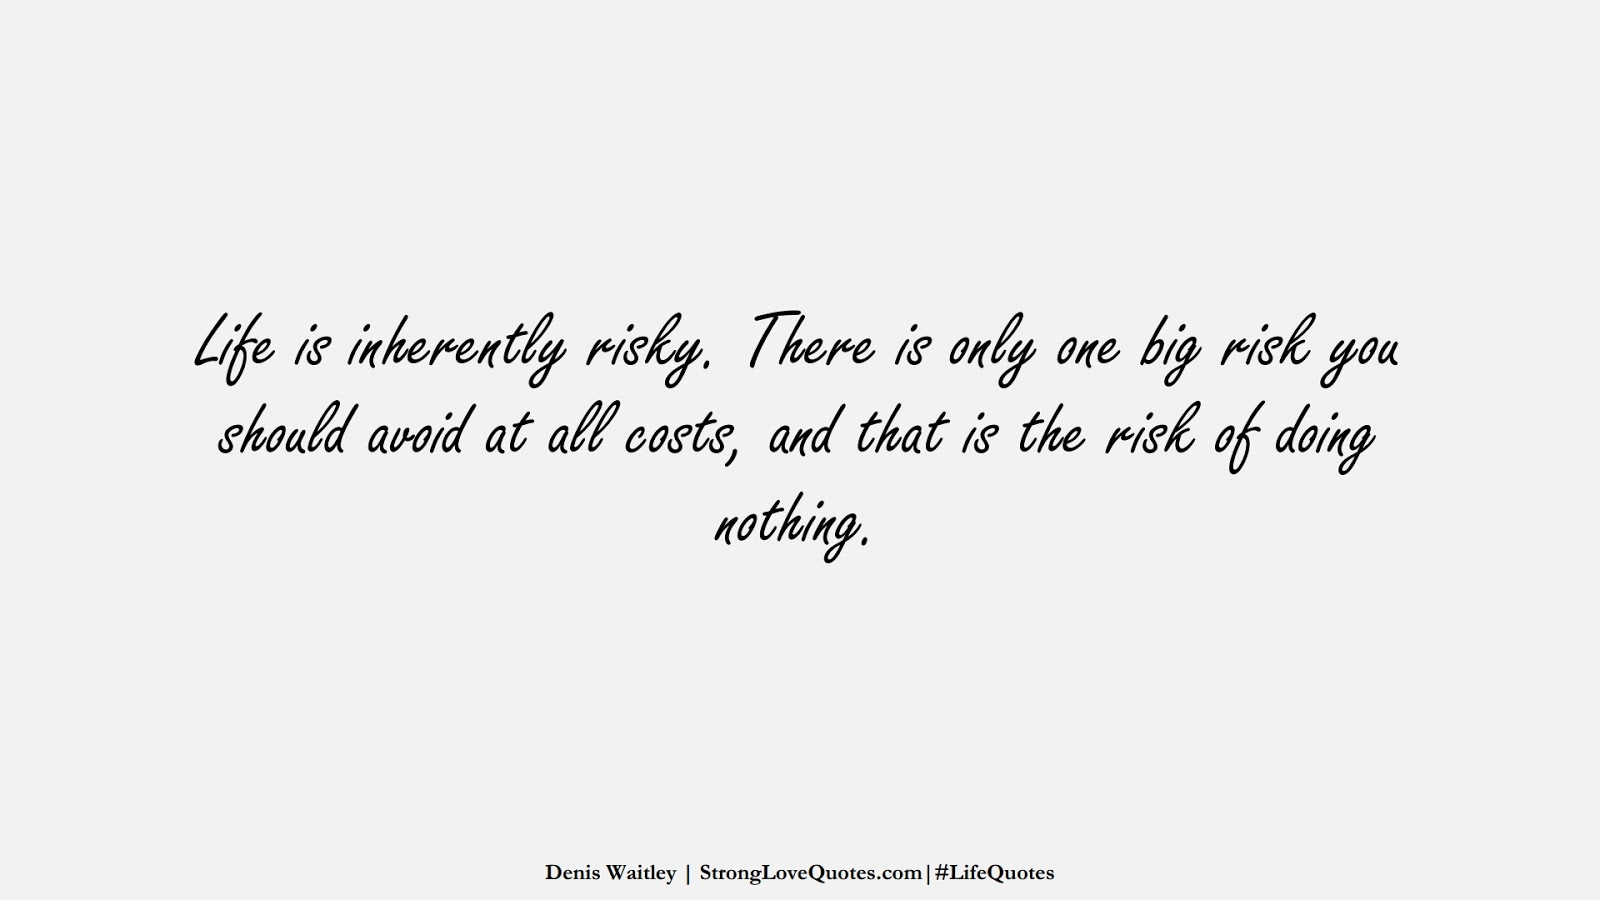 Life is inherently risky. There is only one big risk you should avoid at all costs, and that is the risk of doing nothing. (Denis Waitley);  #LifeQuotes